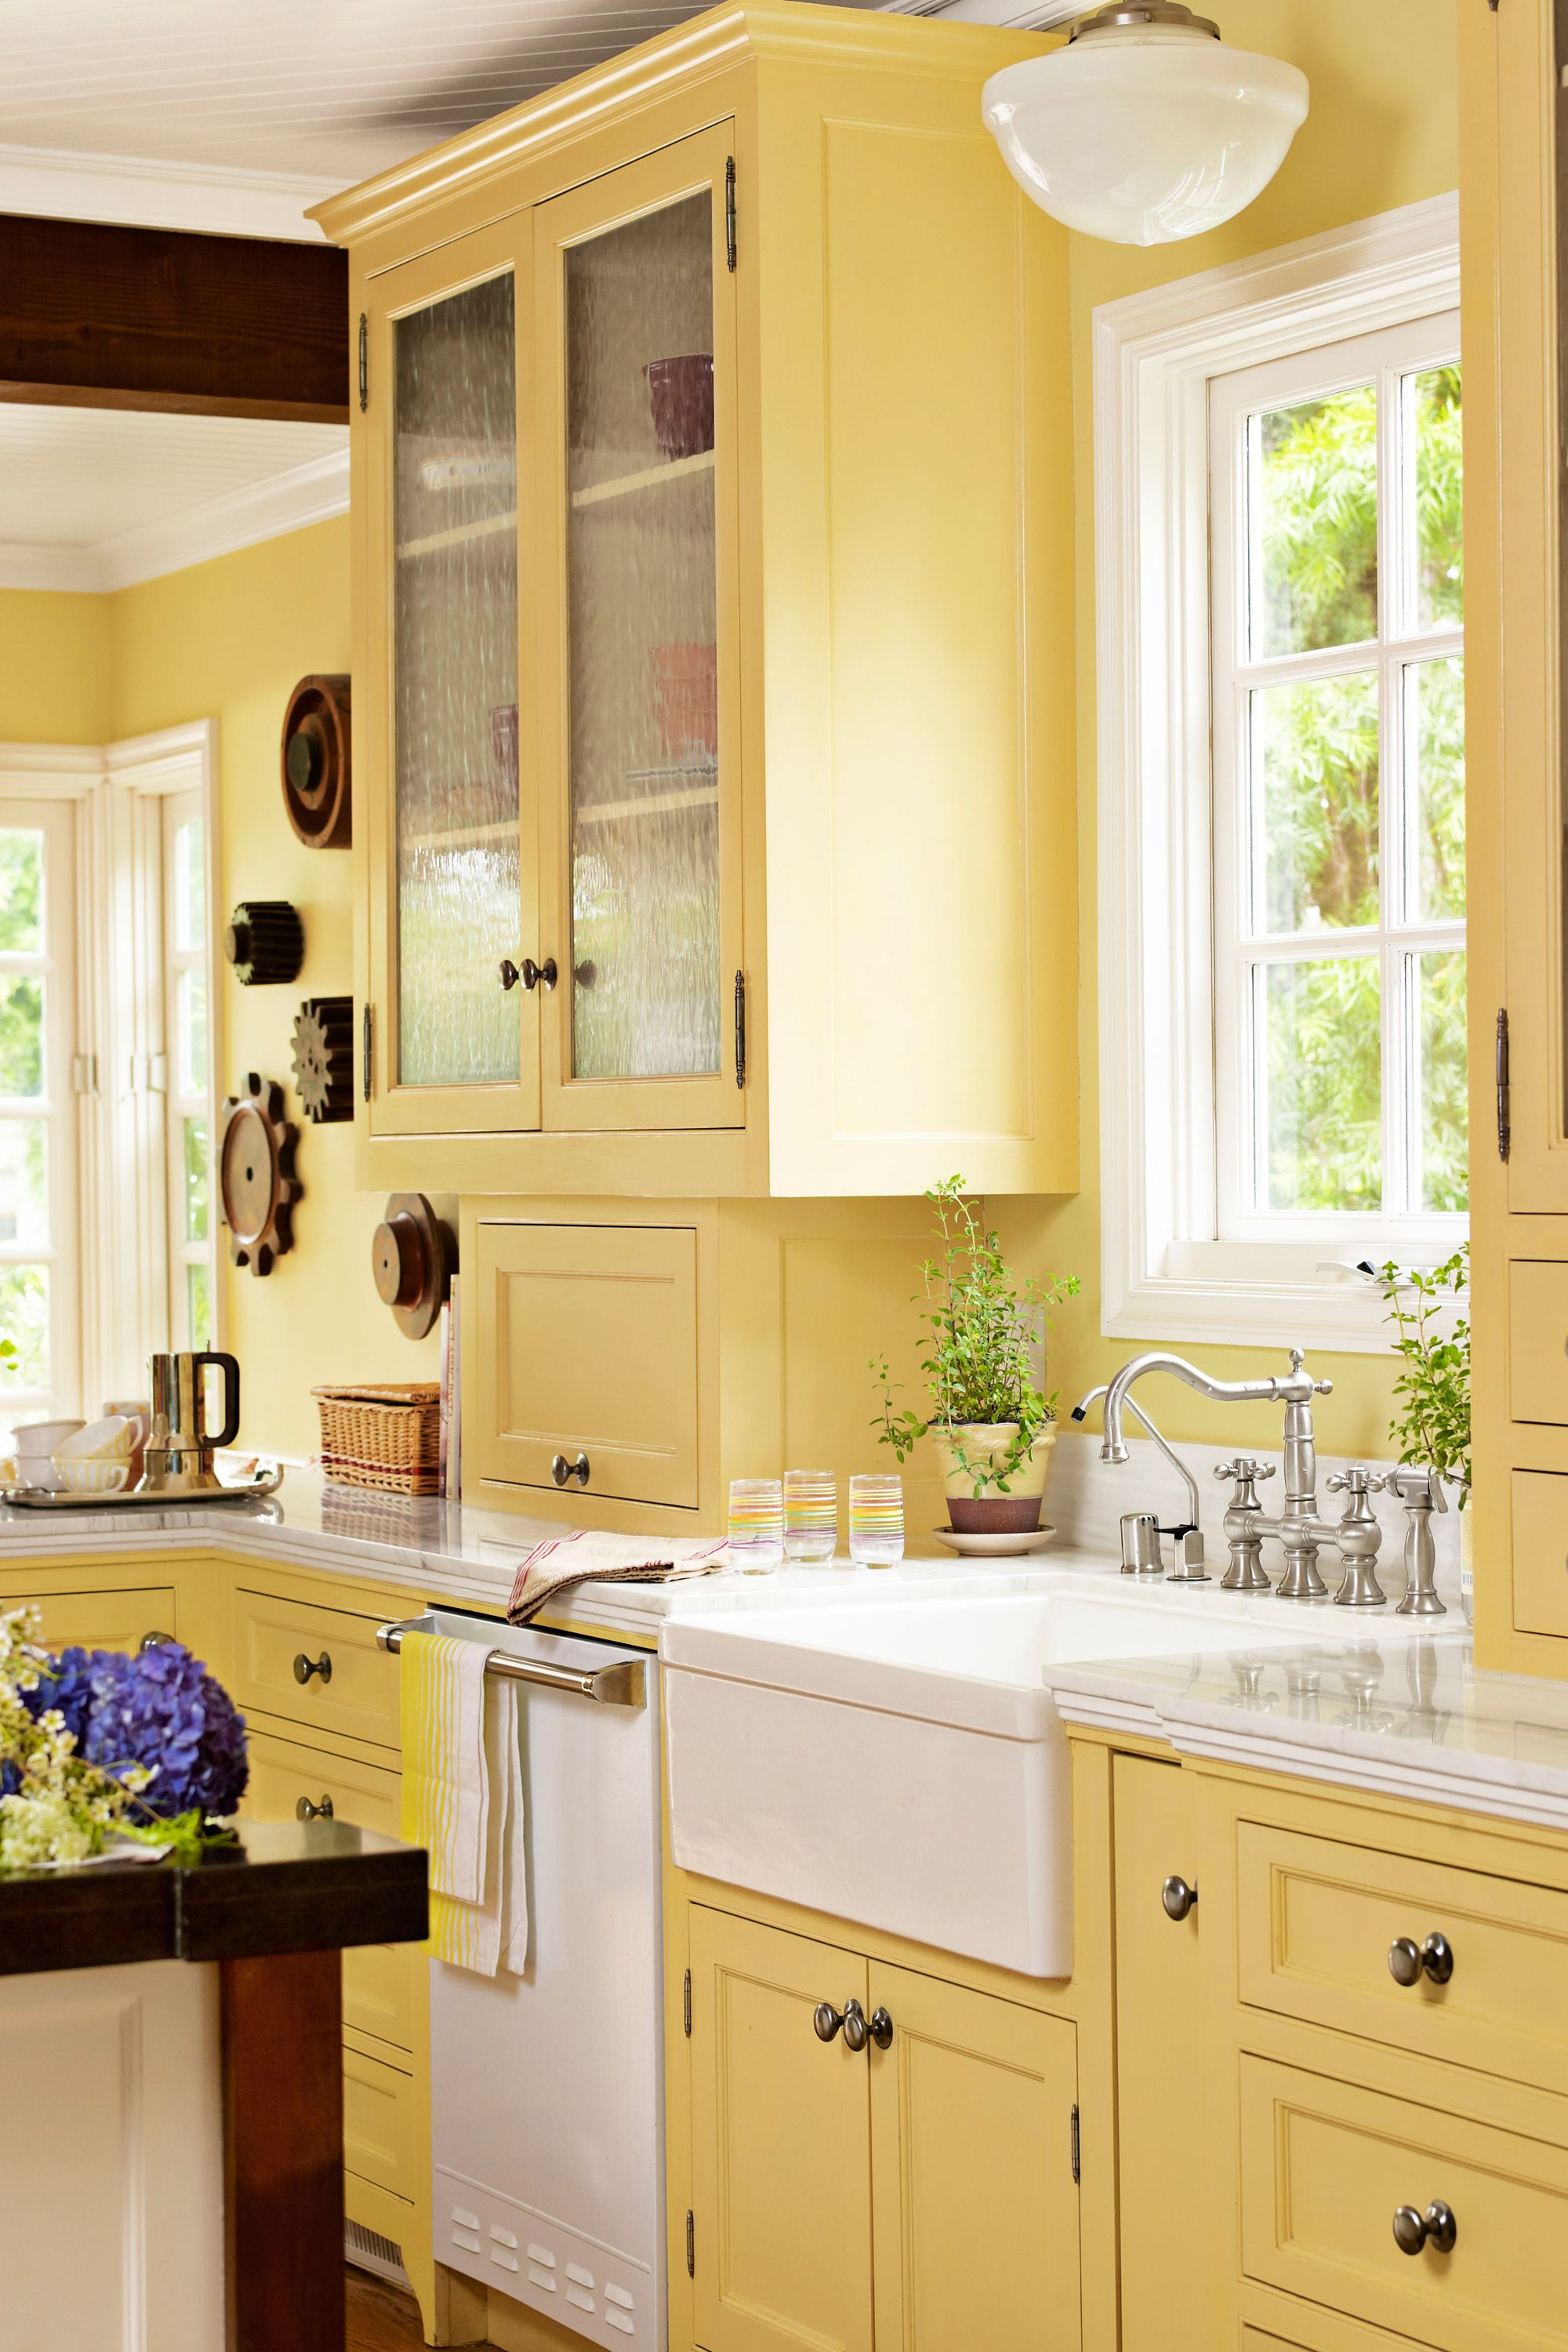 15+ Ways to Add Color to Your Kitchen | Homey/Cozy/ Kitchens ...